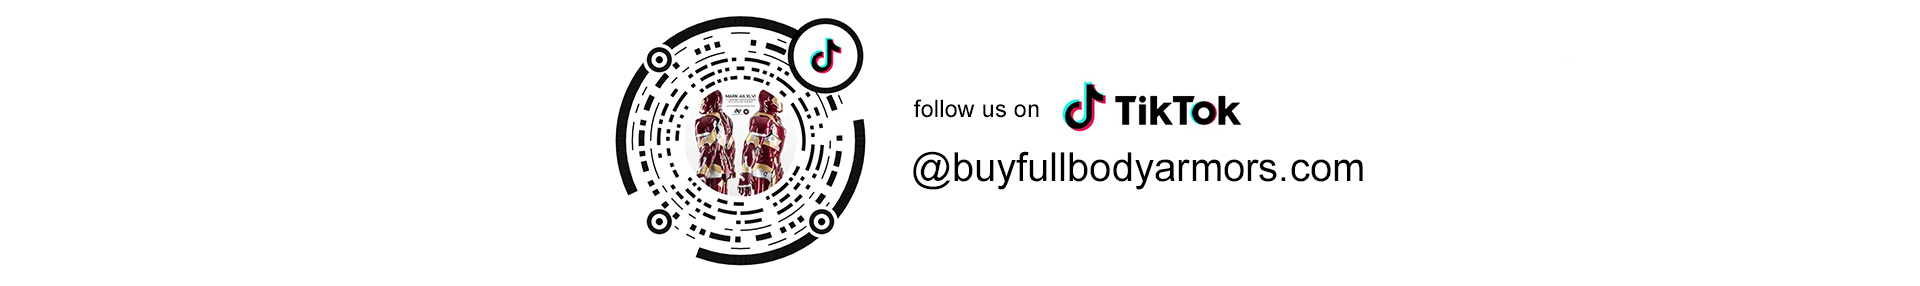 follow TikTok @buyfullbodyarmors.com